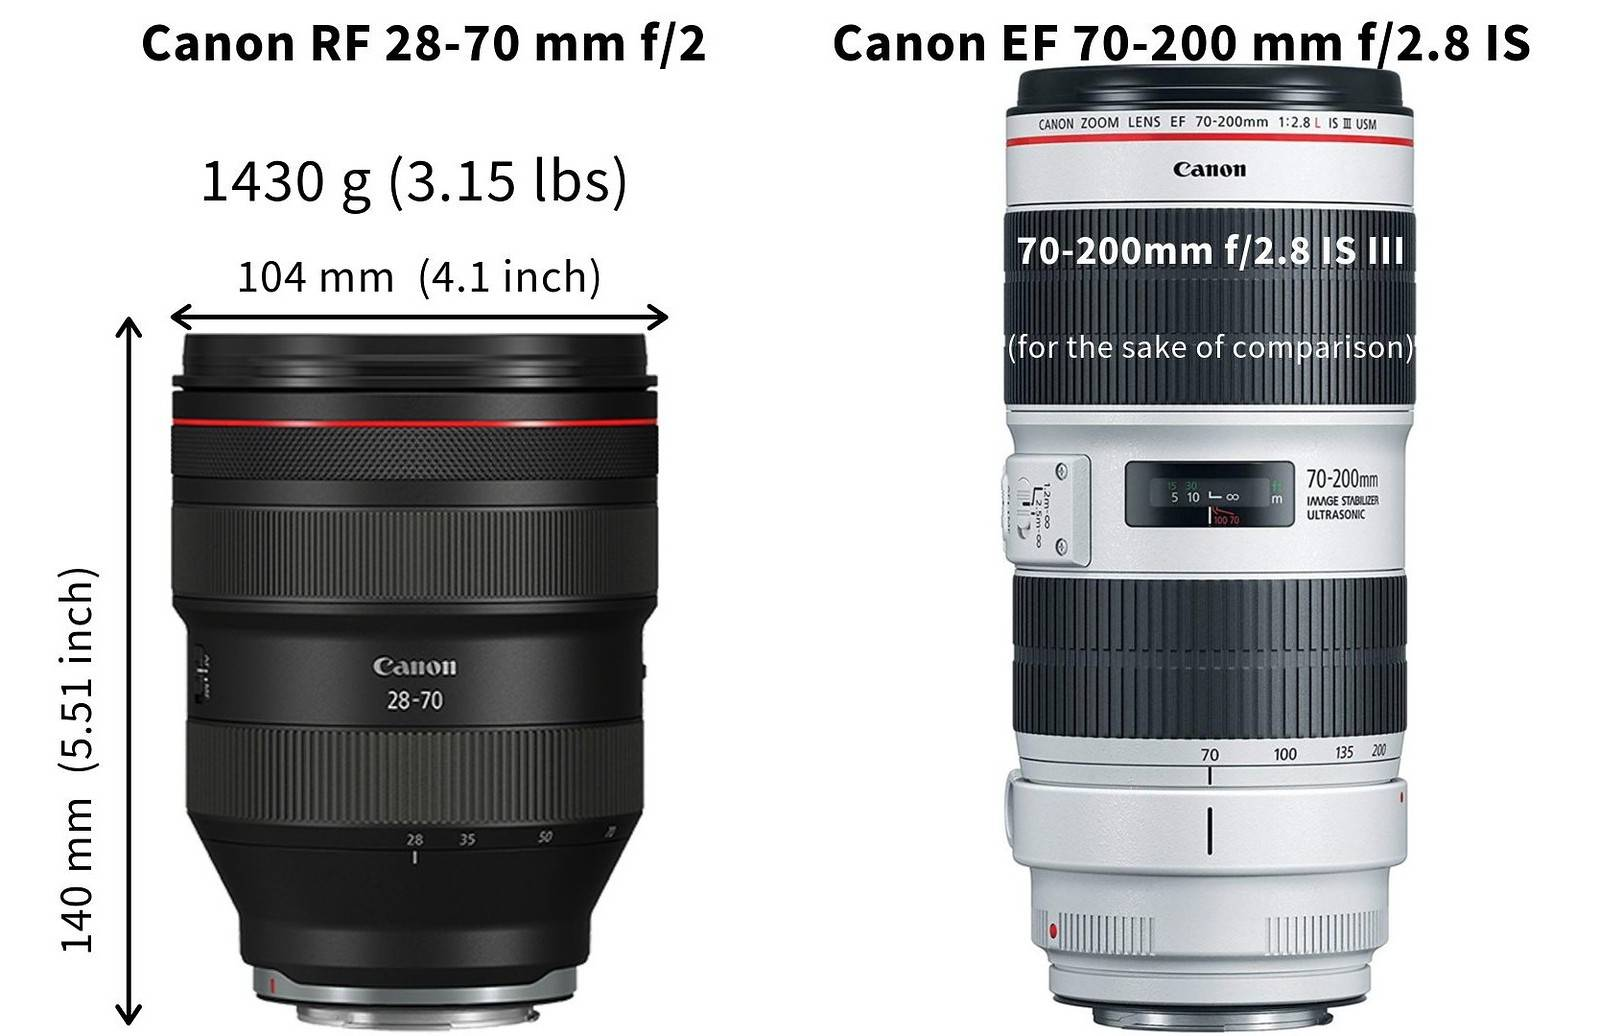 Canon RF 28-70 mm f/2 vs canon 70-200mm f/2.8 side by side